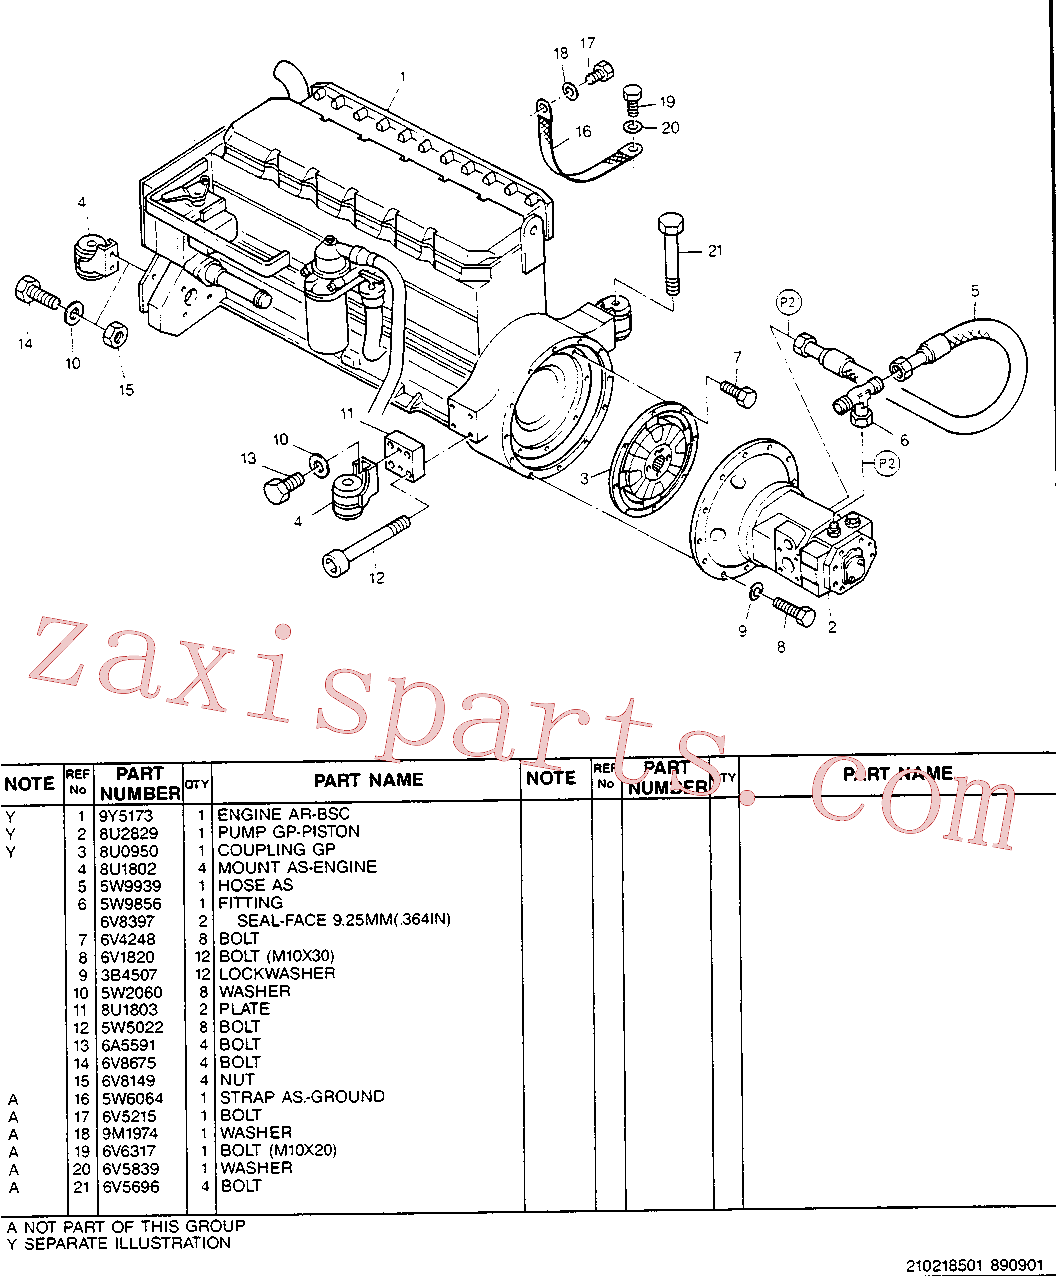 CAT 5W-1753 for 224B Excavator(EXC) engine installation 8U-2709 Assembly